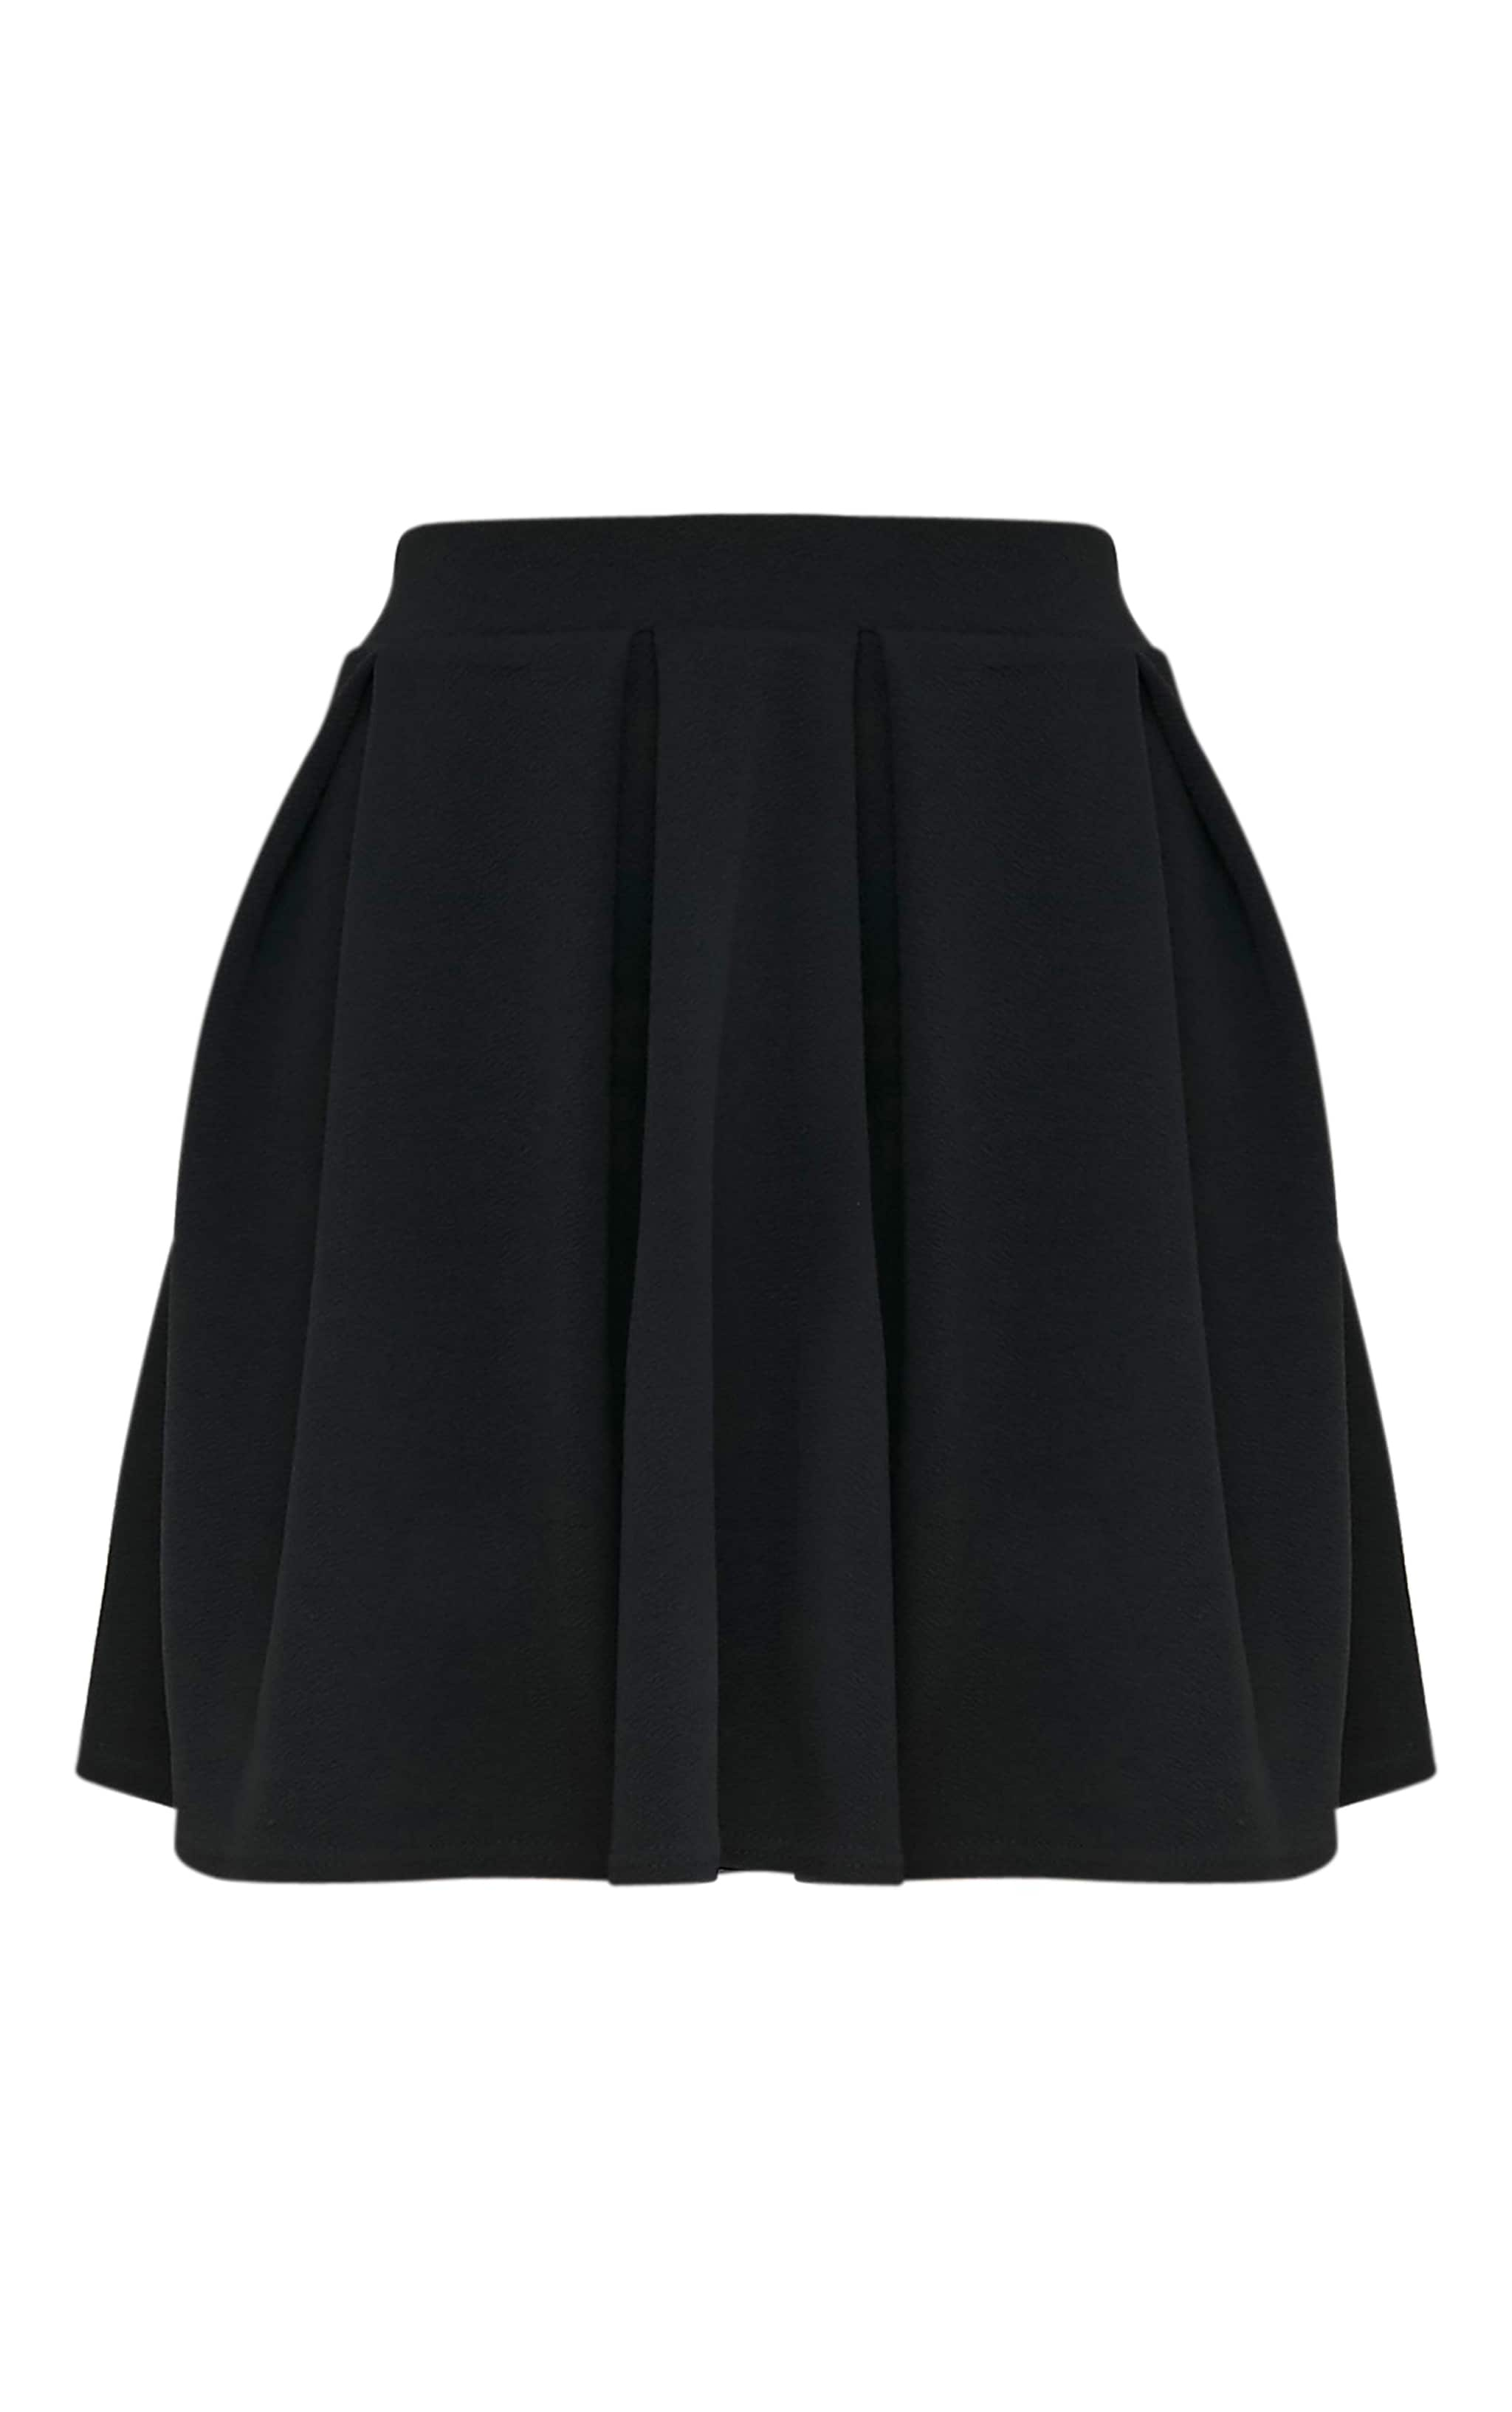 Tyra Black Box Pleat Full Mini Skirt 3